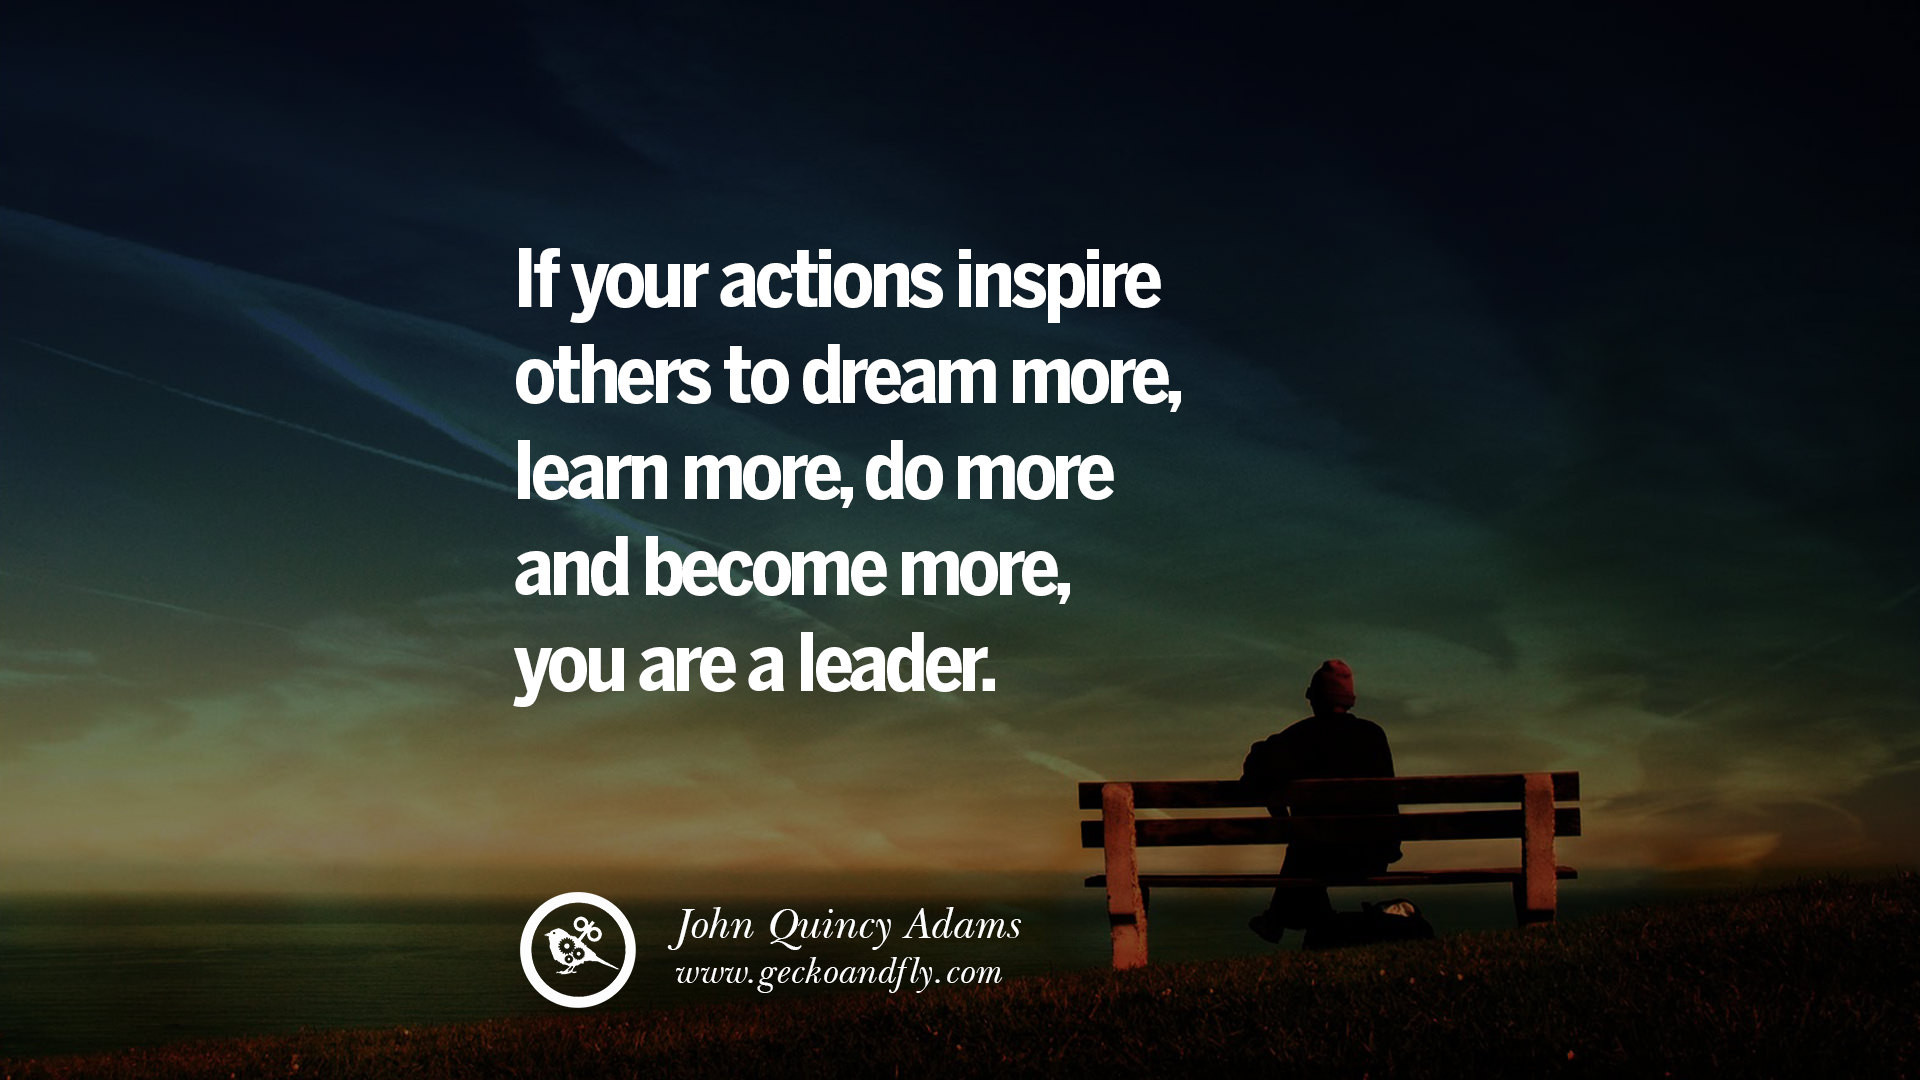 Motivational Quotes For Employees From Managers  22 Uplifting and Motivational Quotes on Management Leadership